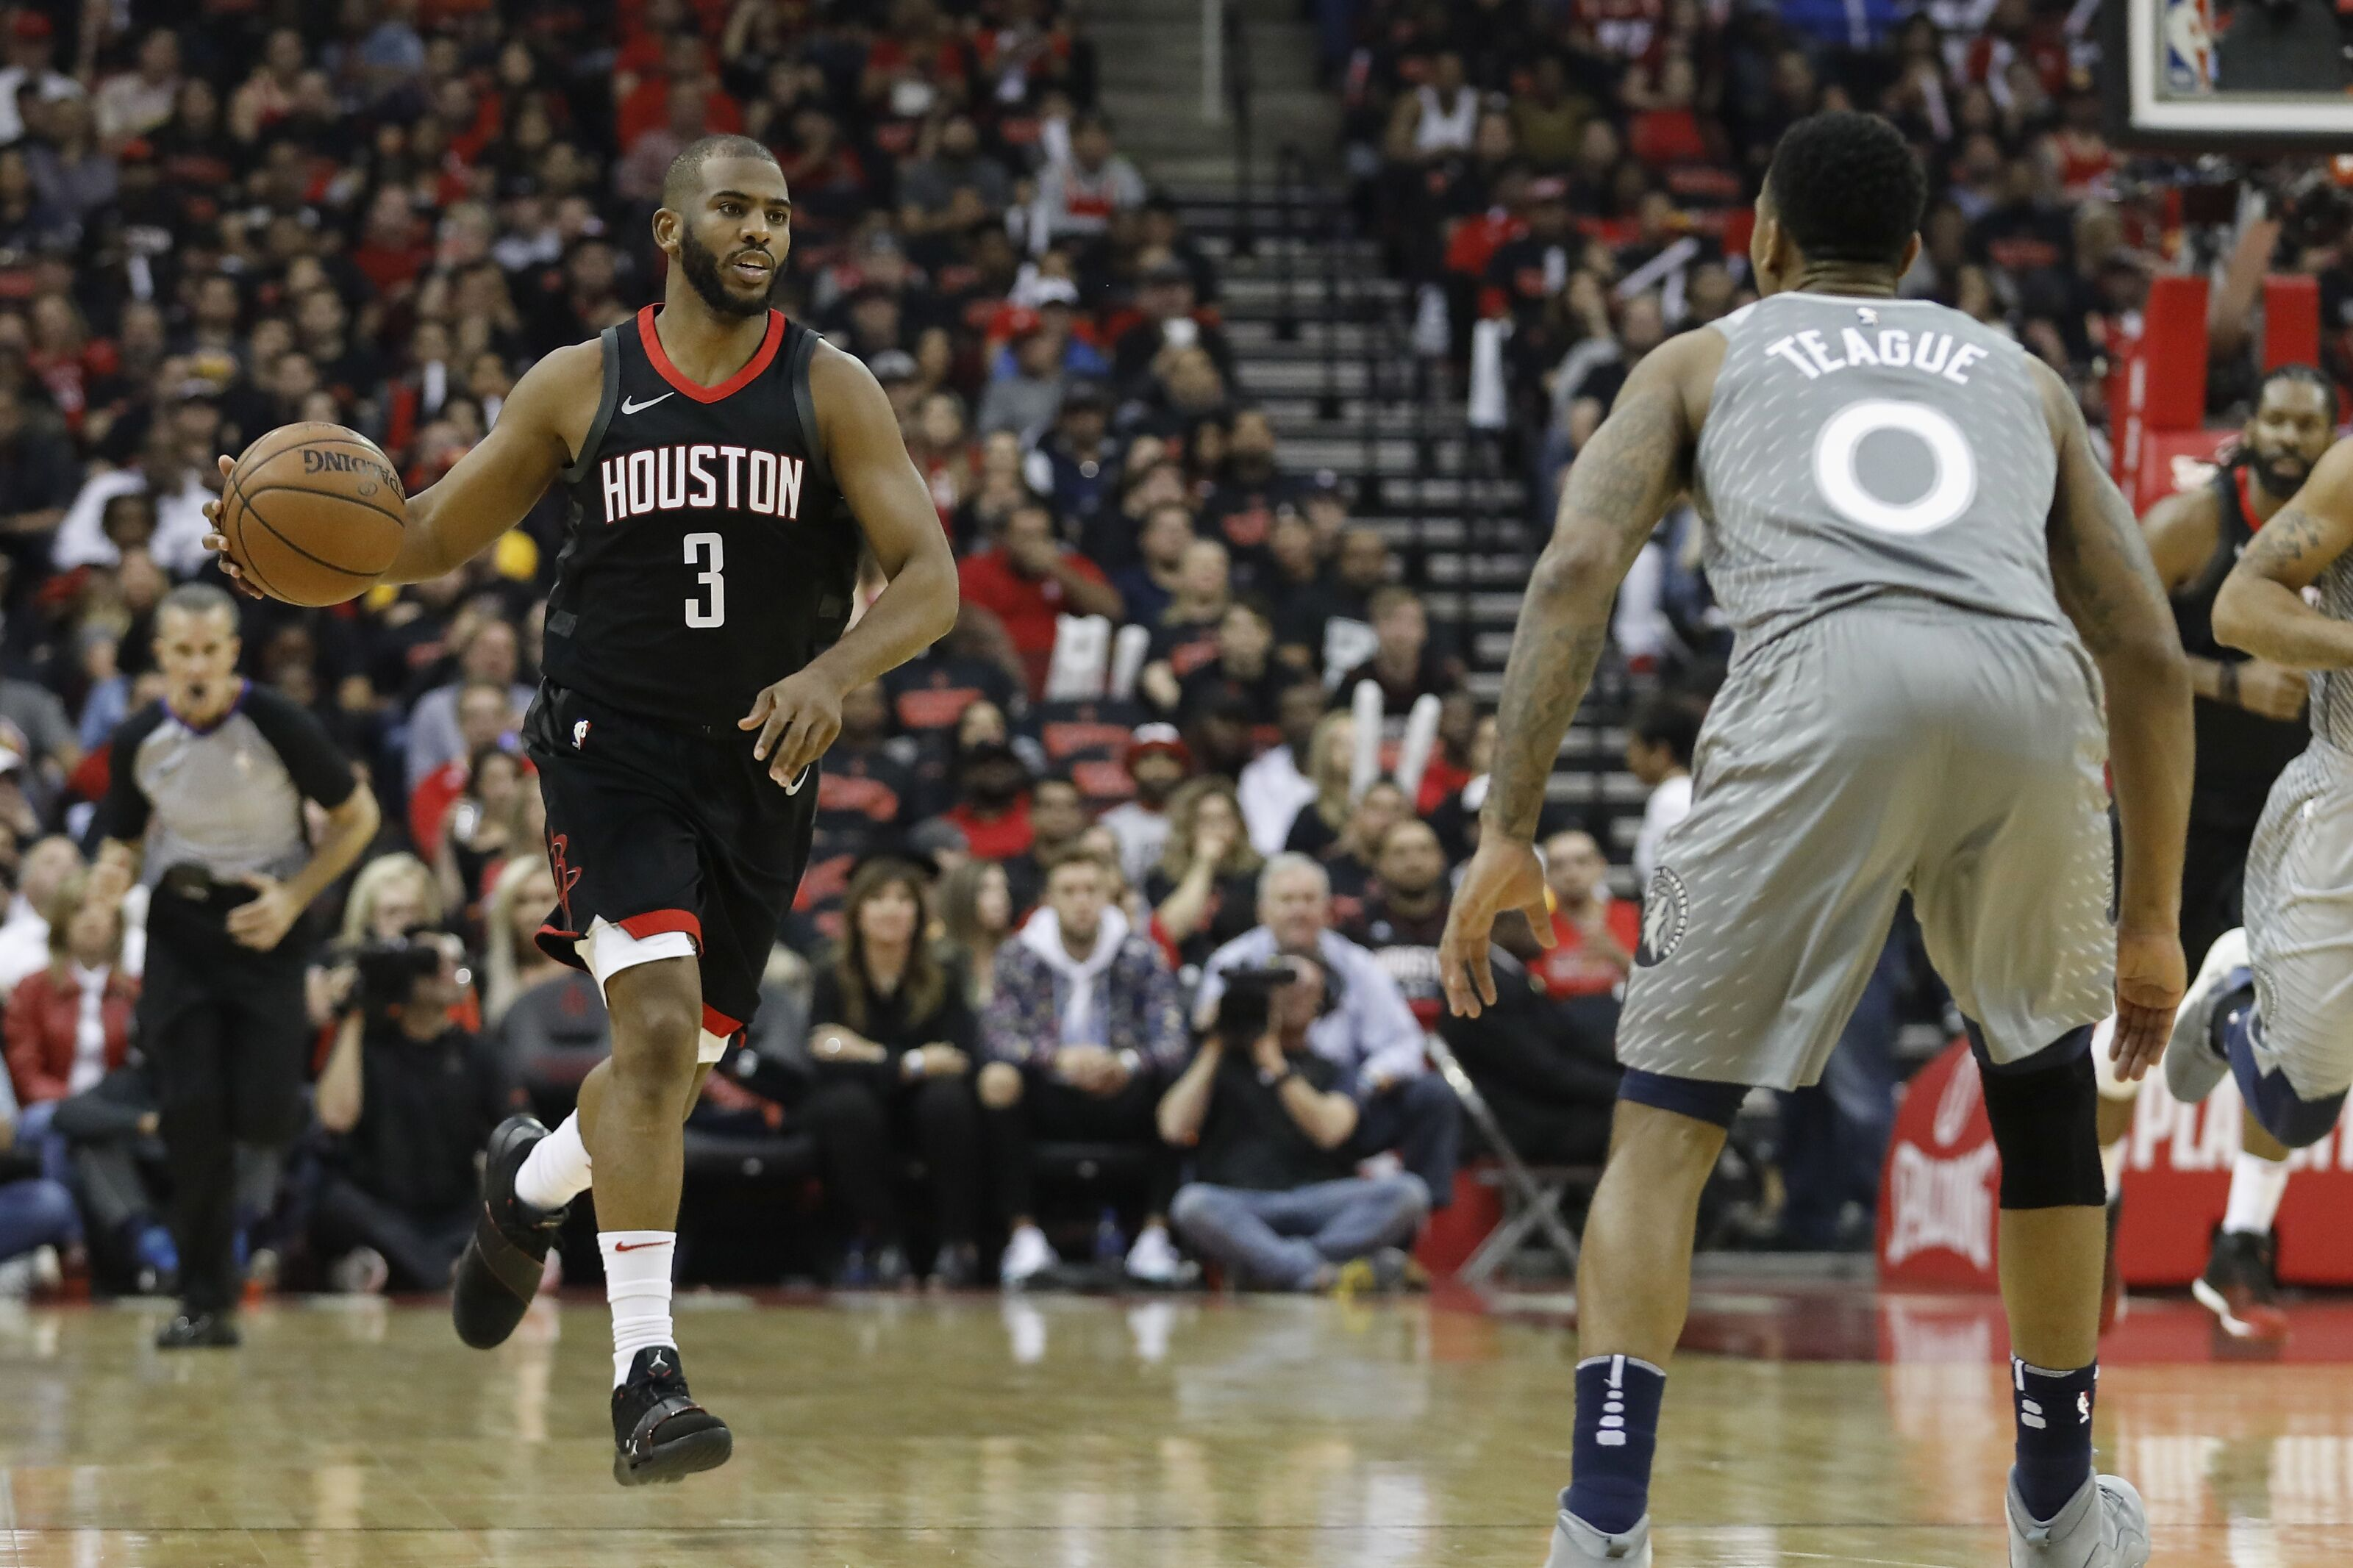 947705490-minnesota-timberwolves-v-houston-rockets-game-one.jpg